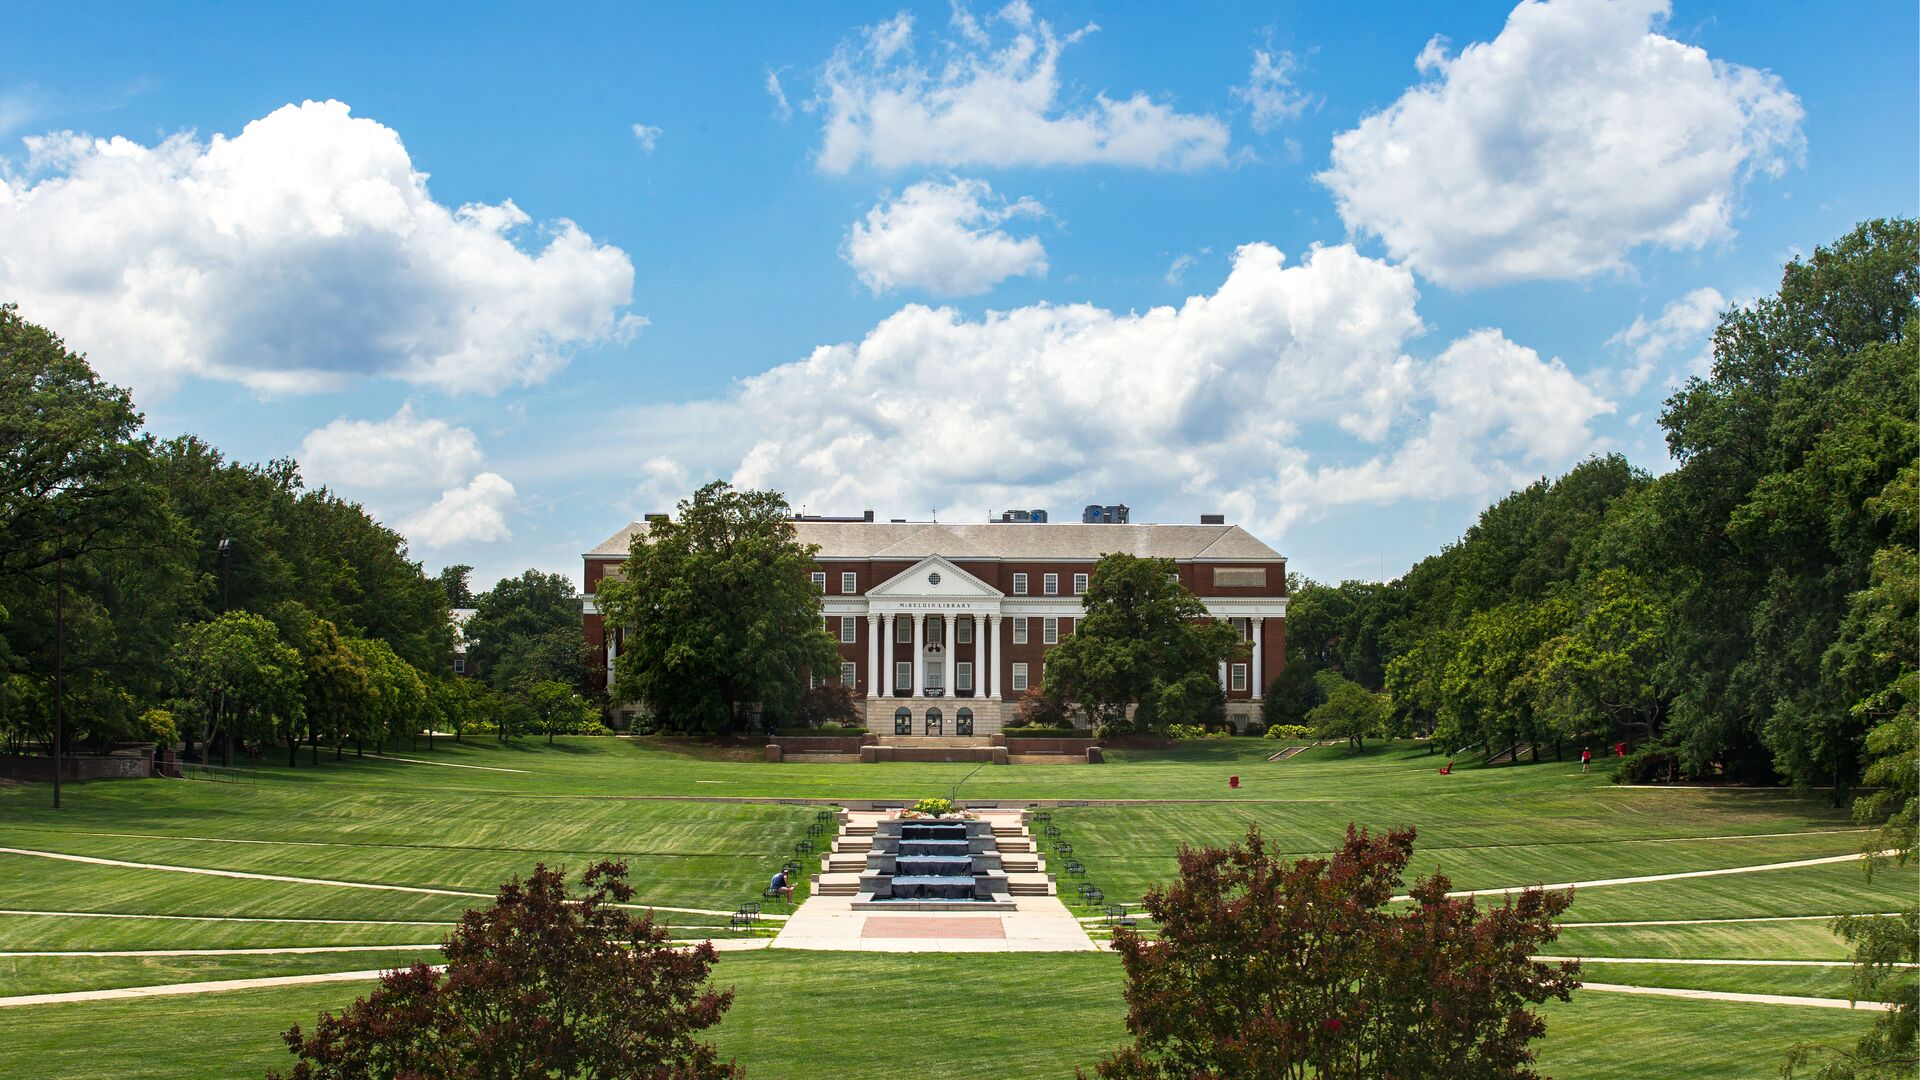 View of the Mall and ODK Fountain looking towards McKeldin Library, from the steps of Miller Administration Building.